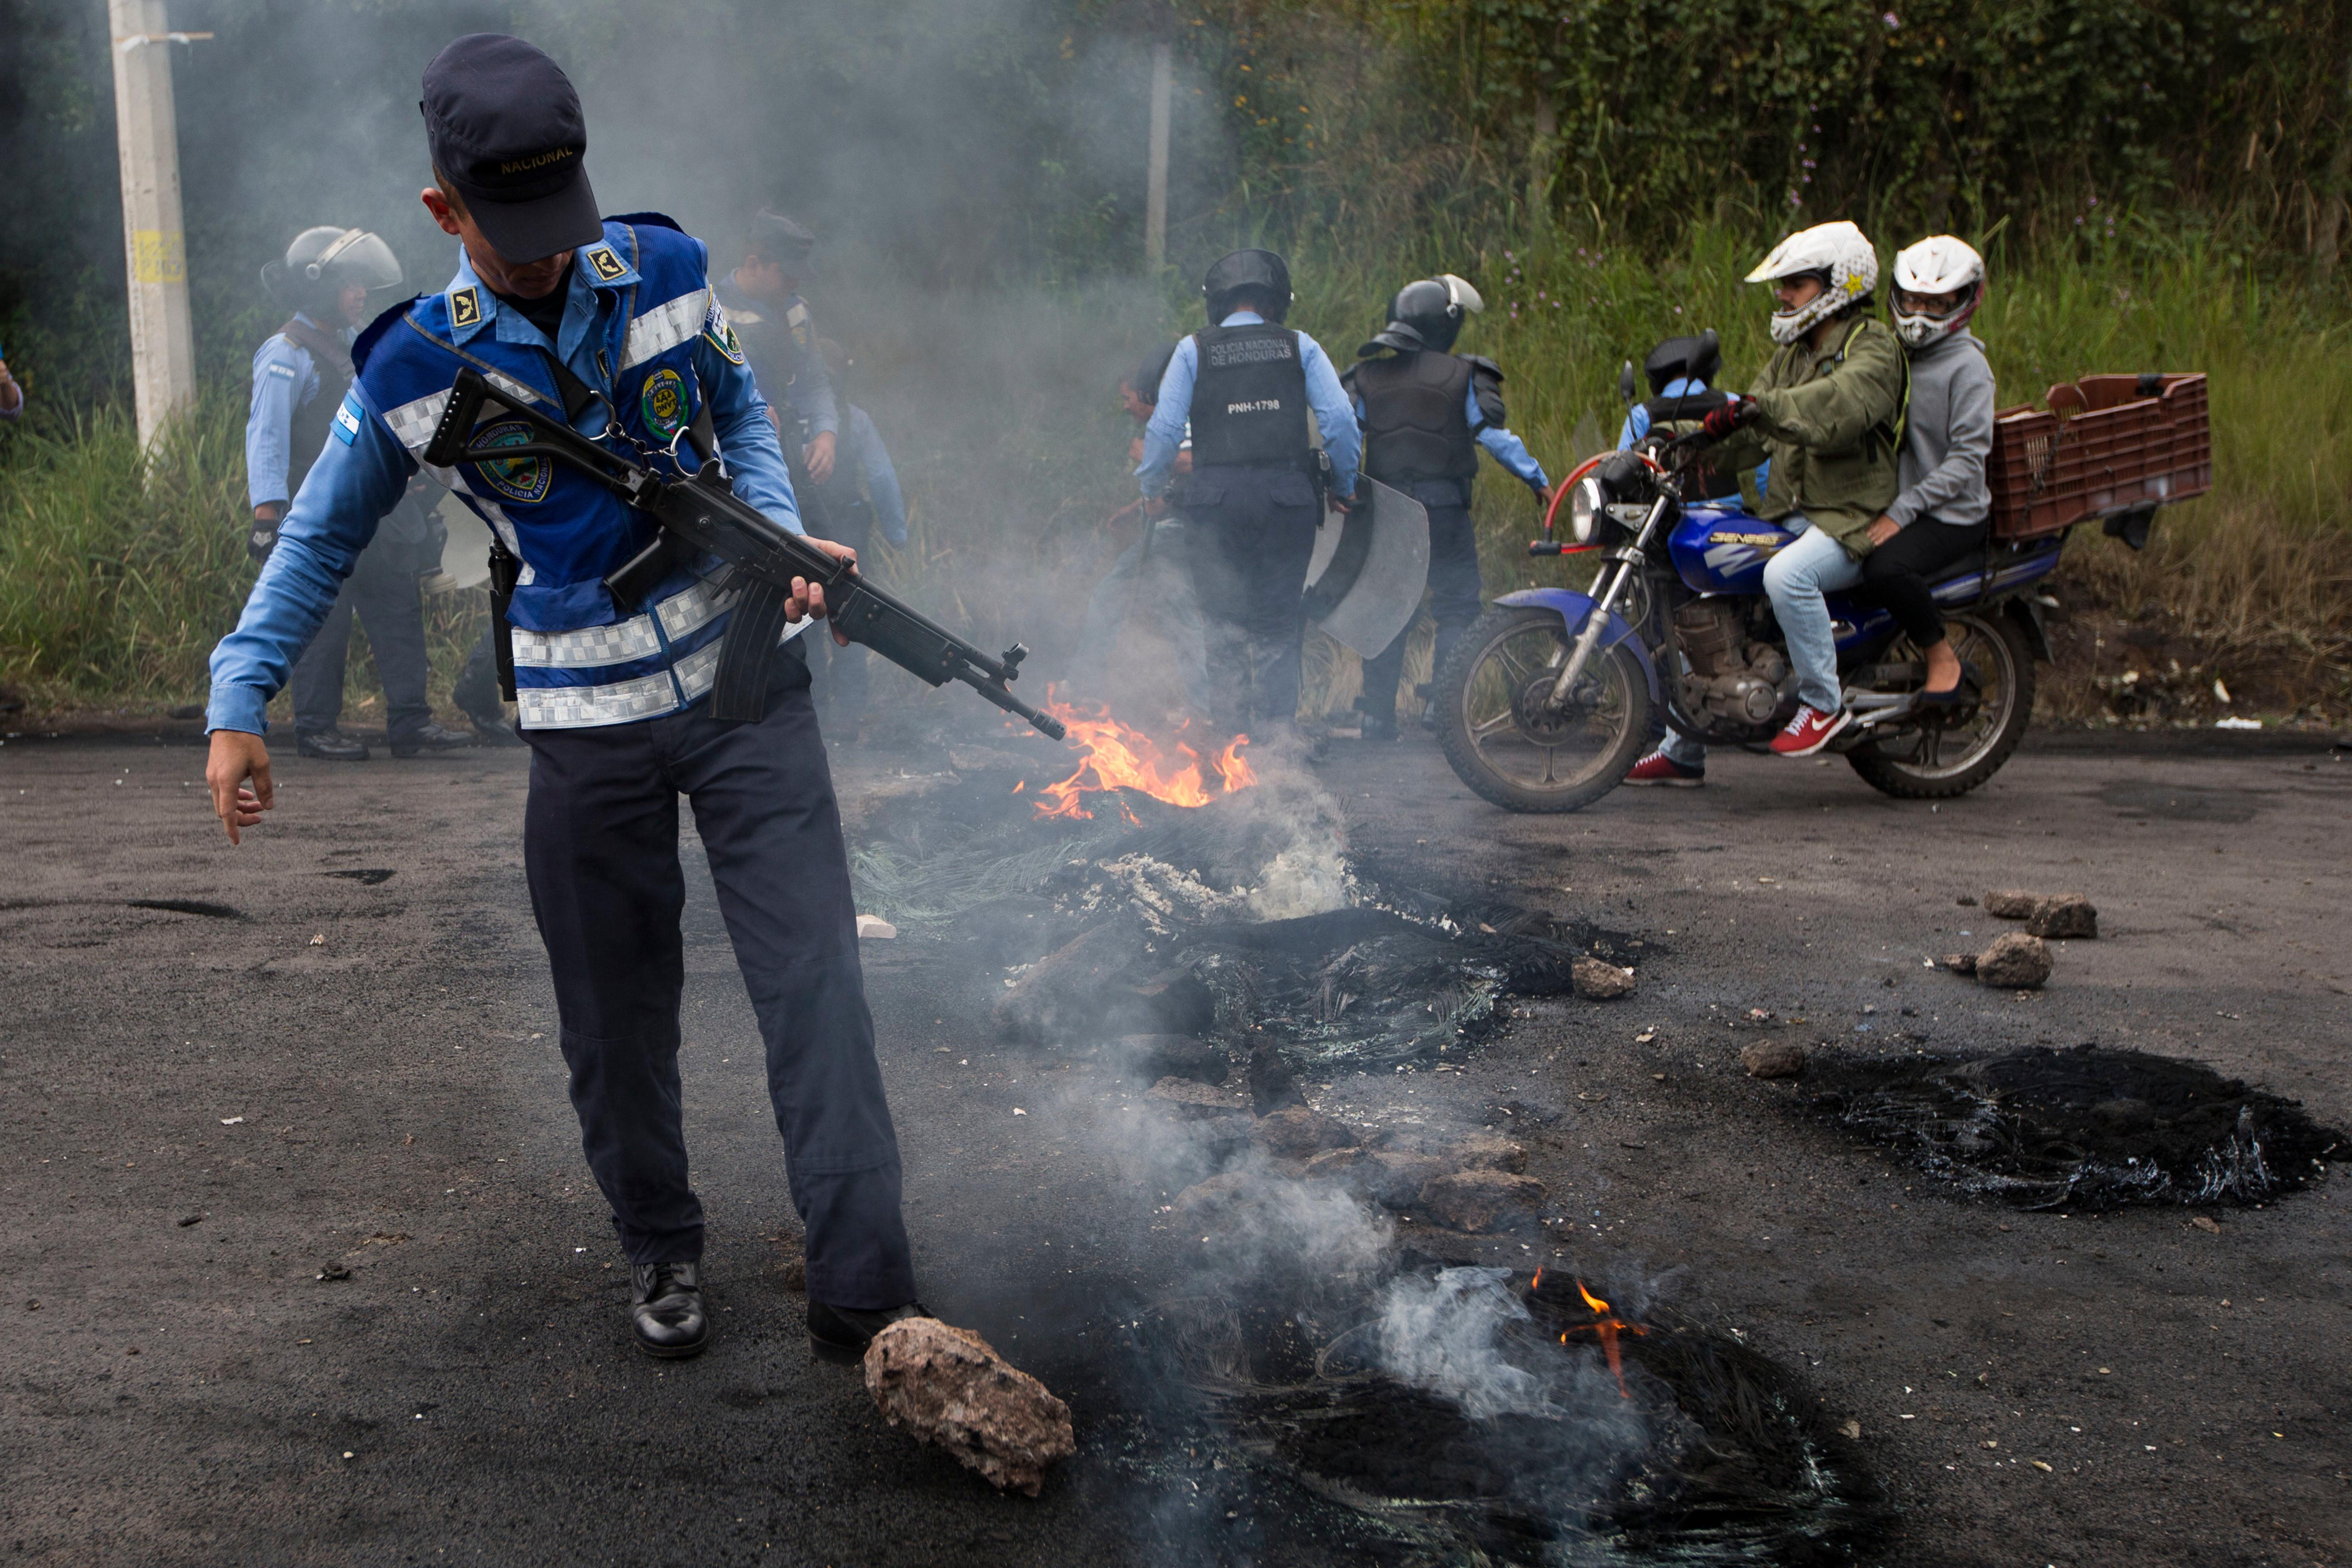 Soldiers clear away a barricade erected by anti-government protestors blocking the road to Valle de los Angeles, on the outskirts of Tegucigalpa, Honduras, Thursday, Dec. 7, 2017. The government has lifted the curfew it imposed last week for nine of the country's 18 provinces, but left it in place for the two biggest cities, Tegucigalpa and San Pedro Sula, armed forces spokesman Jorge Cerrato said. (AP Photo/Moises Castillo)